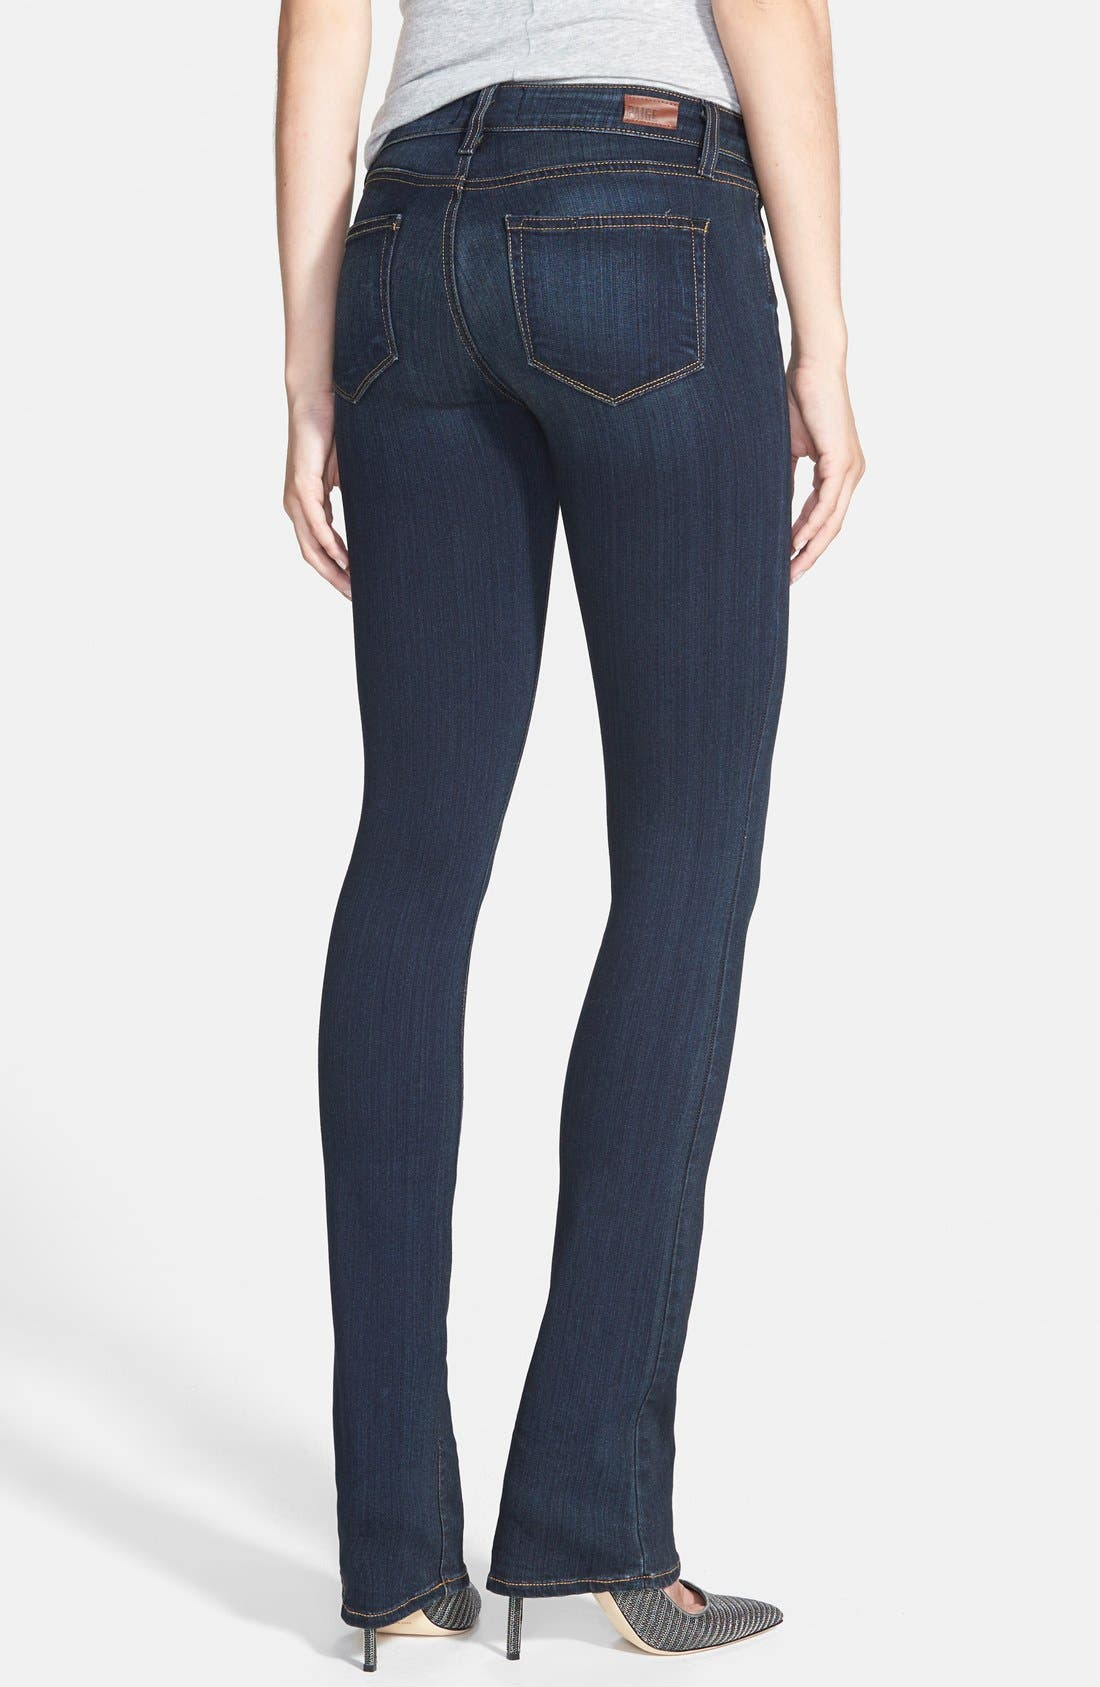 PAIGE, 'Transcend - Manhattan' Bootcut Jeans, Alternate thumbnail 3, color, ARMSTRONG